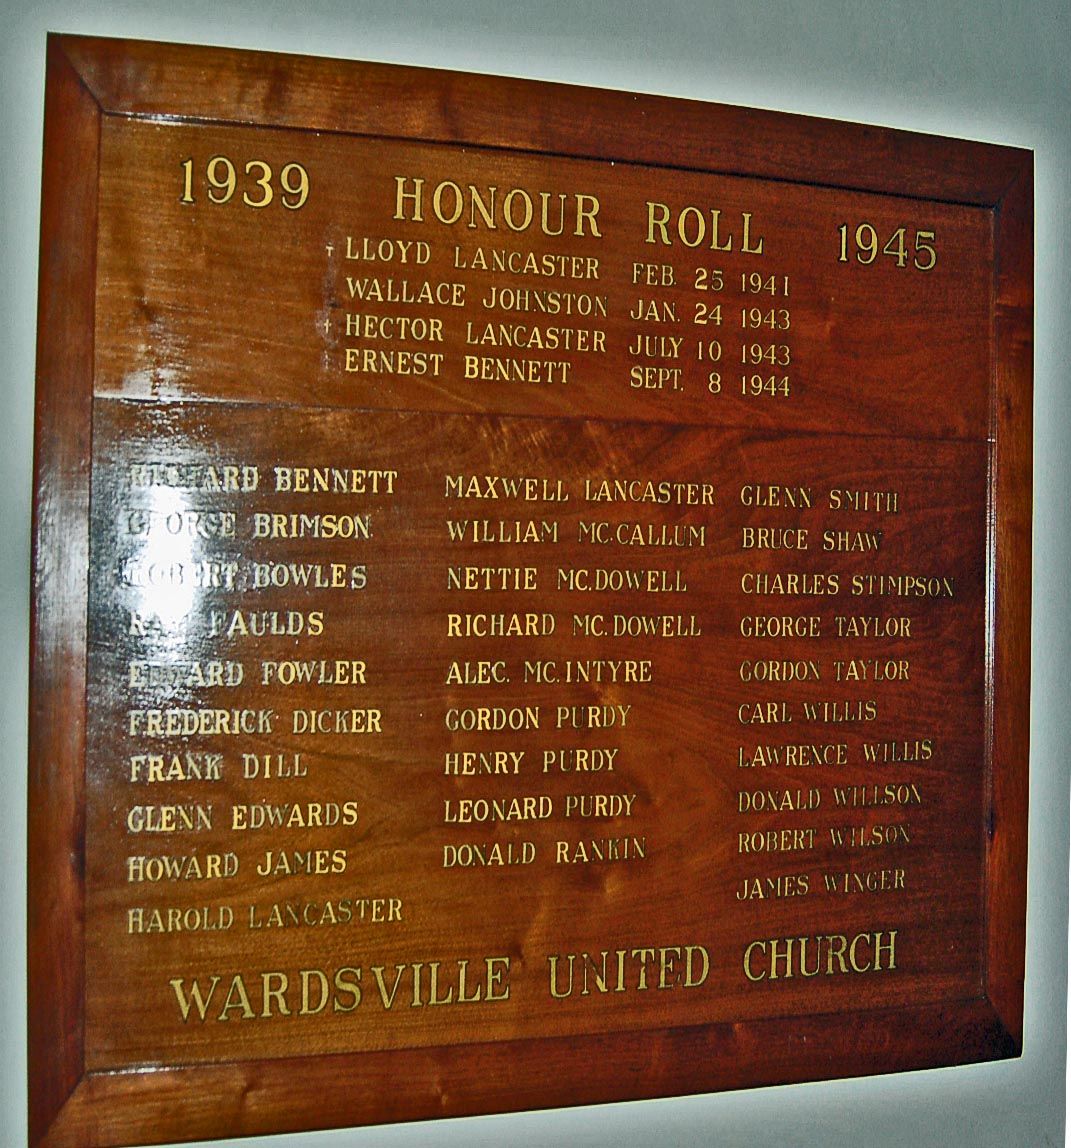 Memorial – Hector's name appears along with his brother's name on the Honour Roll in Wardsville United Church.